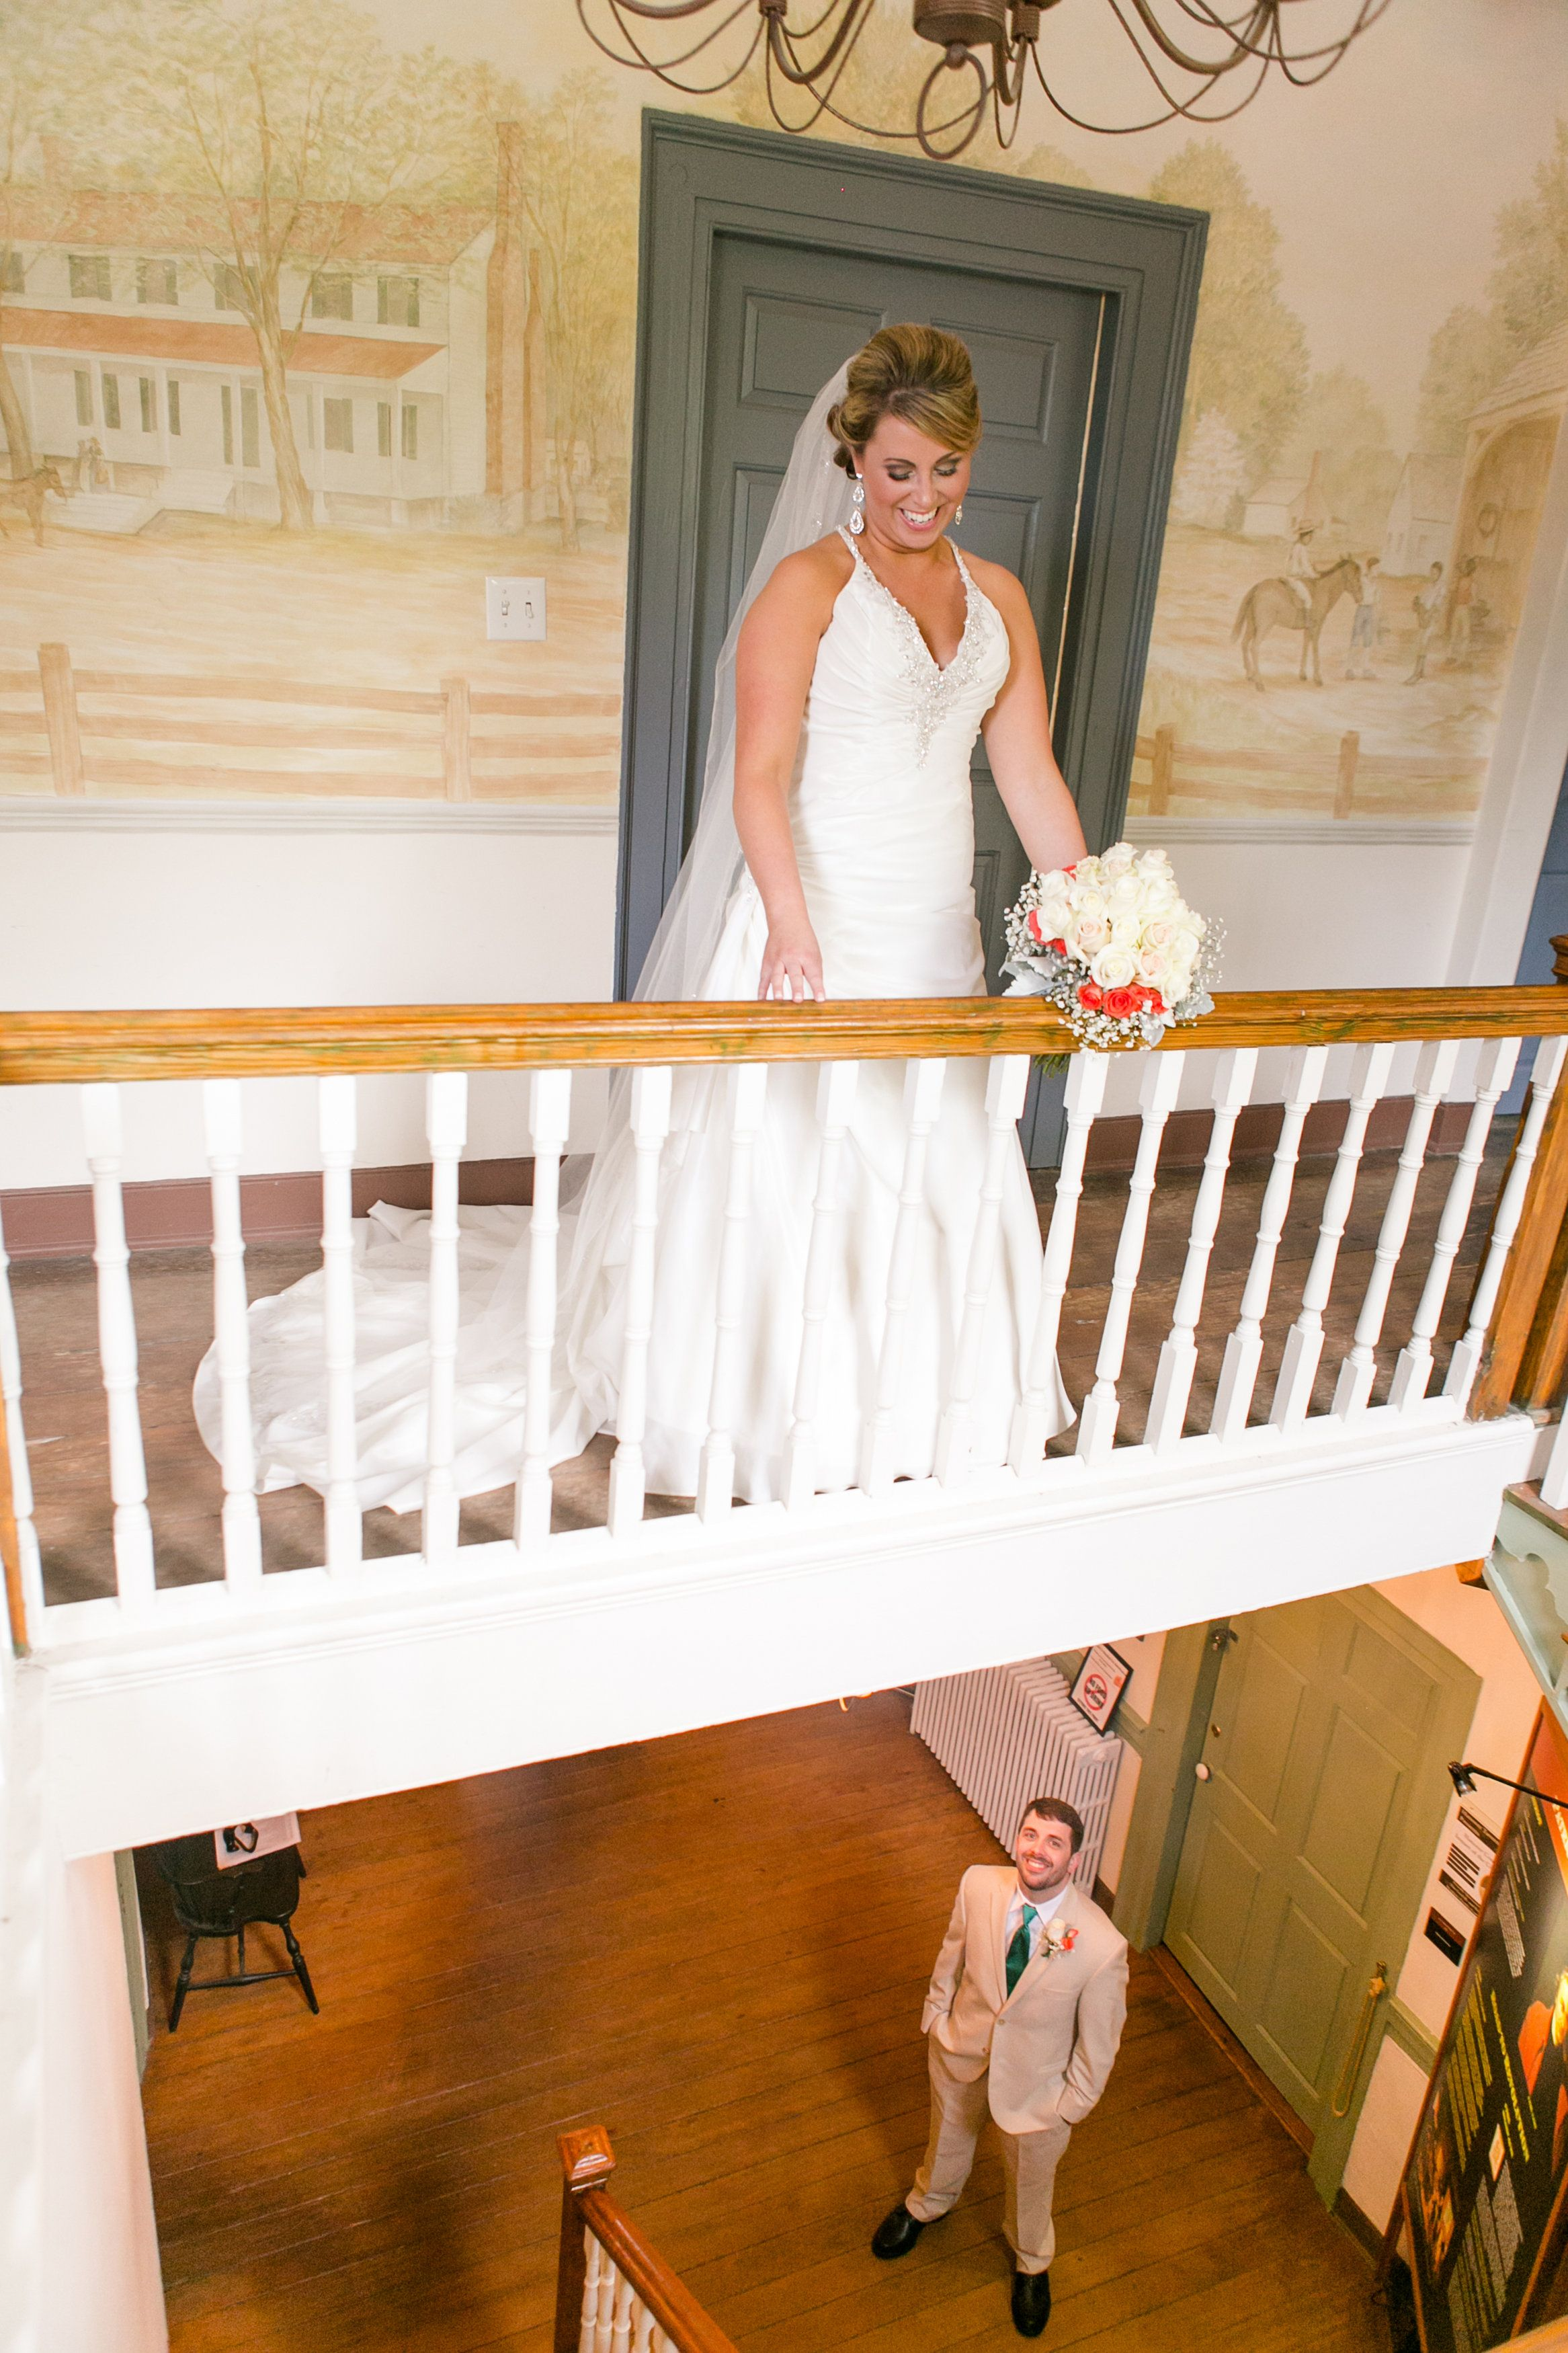 Teal And C Hanover Courthouse Tavern Wedding By Kristi Mckeag Photography See More